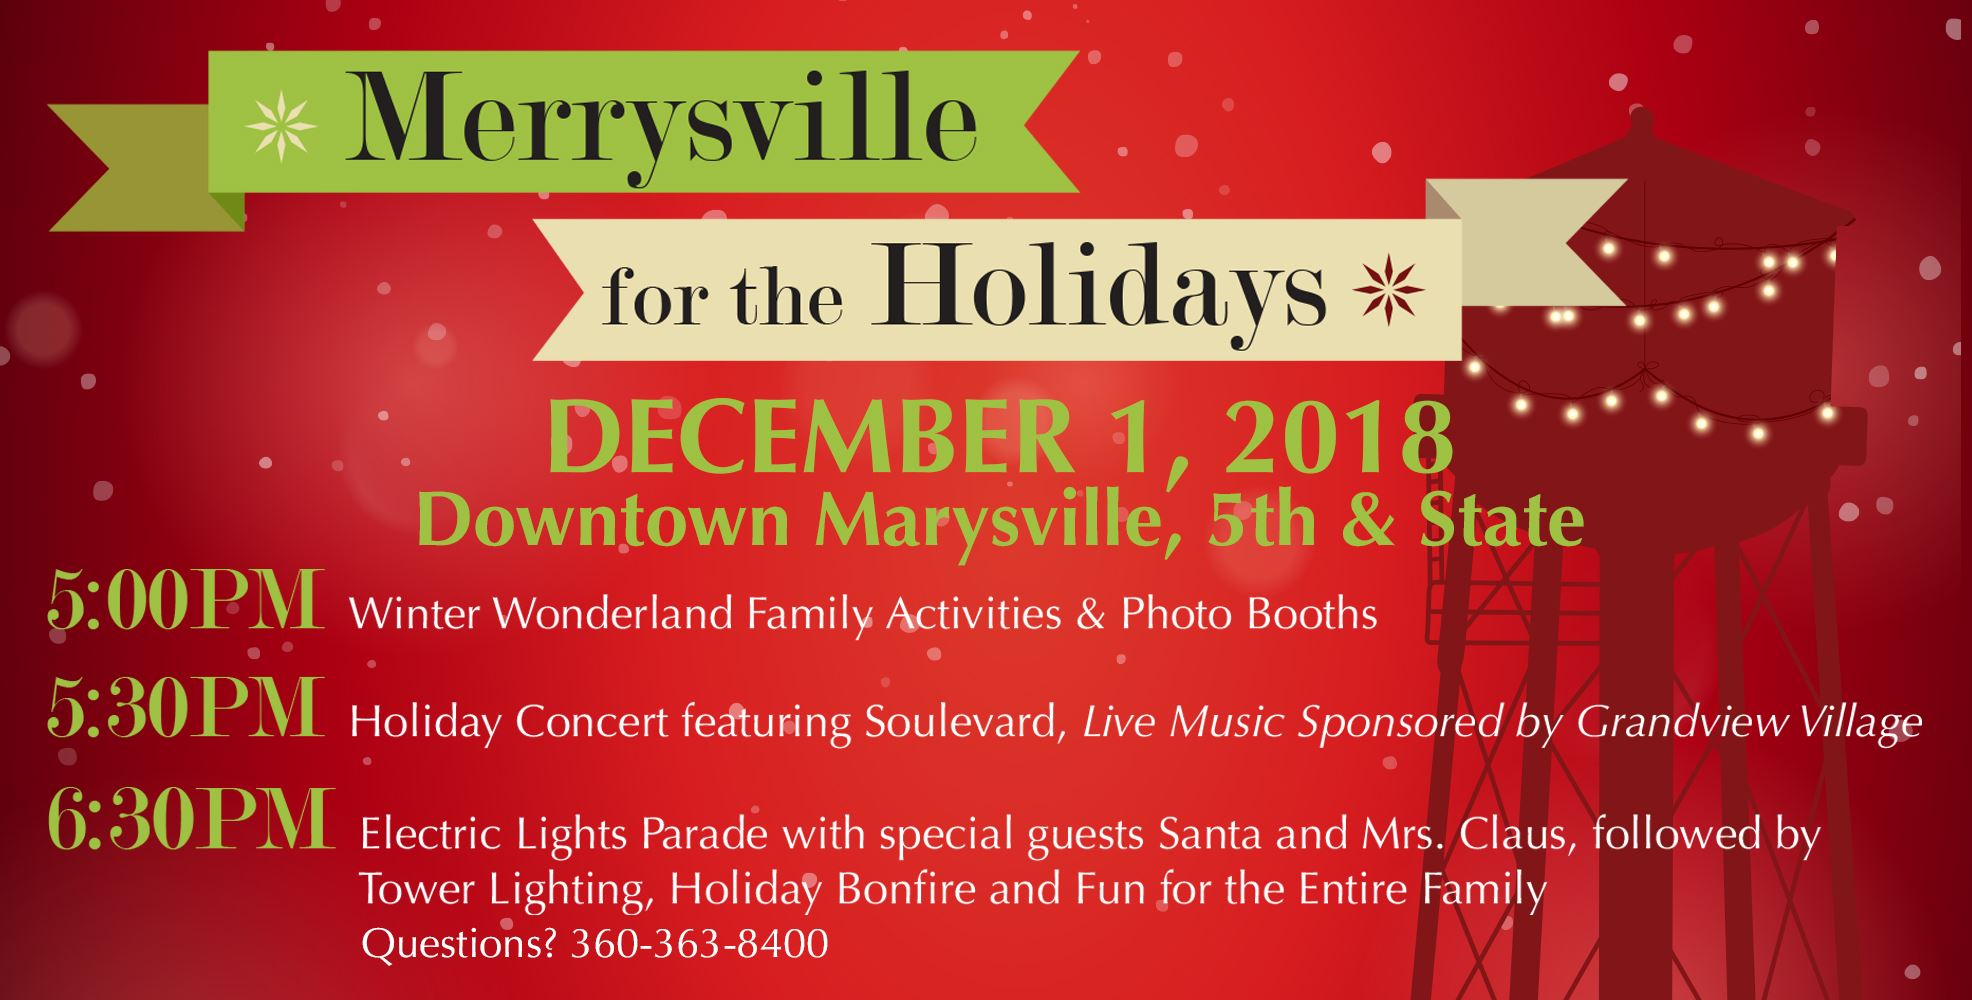 Merrysville for the Holidays Tile